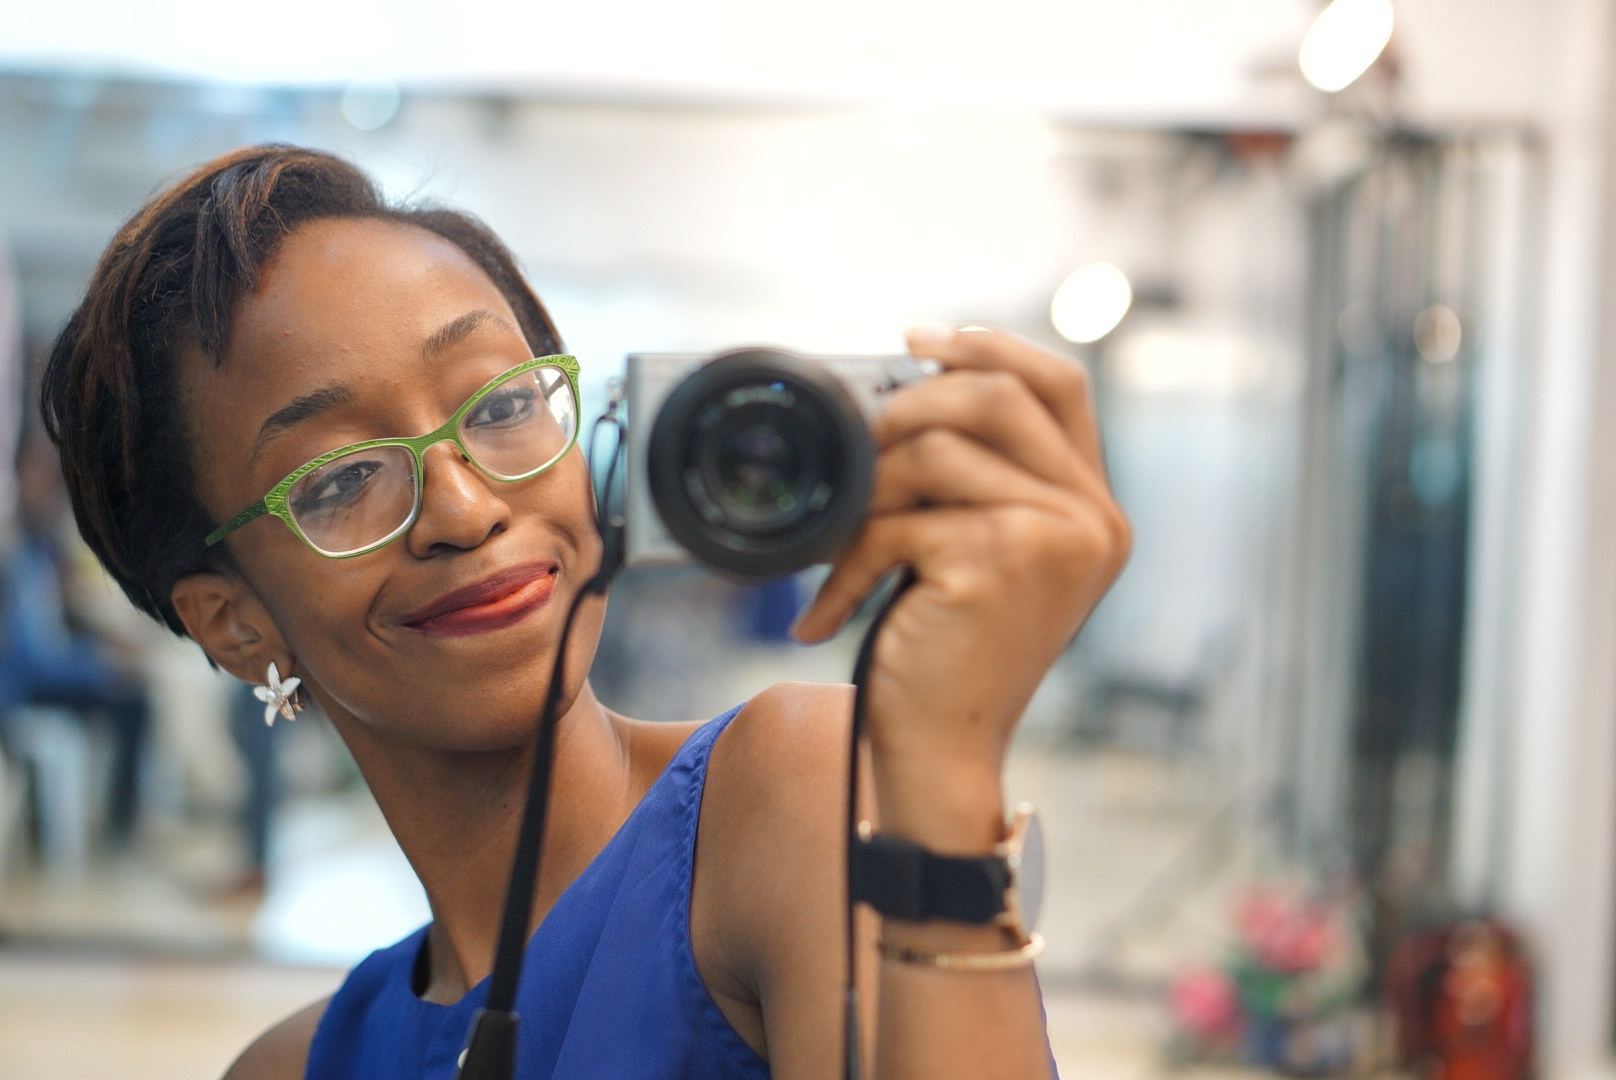 Nigerian fashion and lifestyle blogger Cassie daves smiling in a mirror selfie taken with the sonya6000